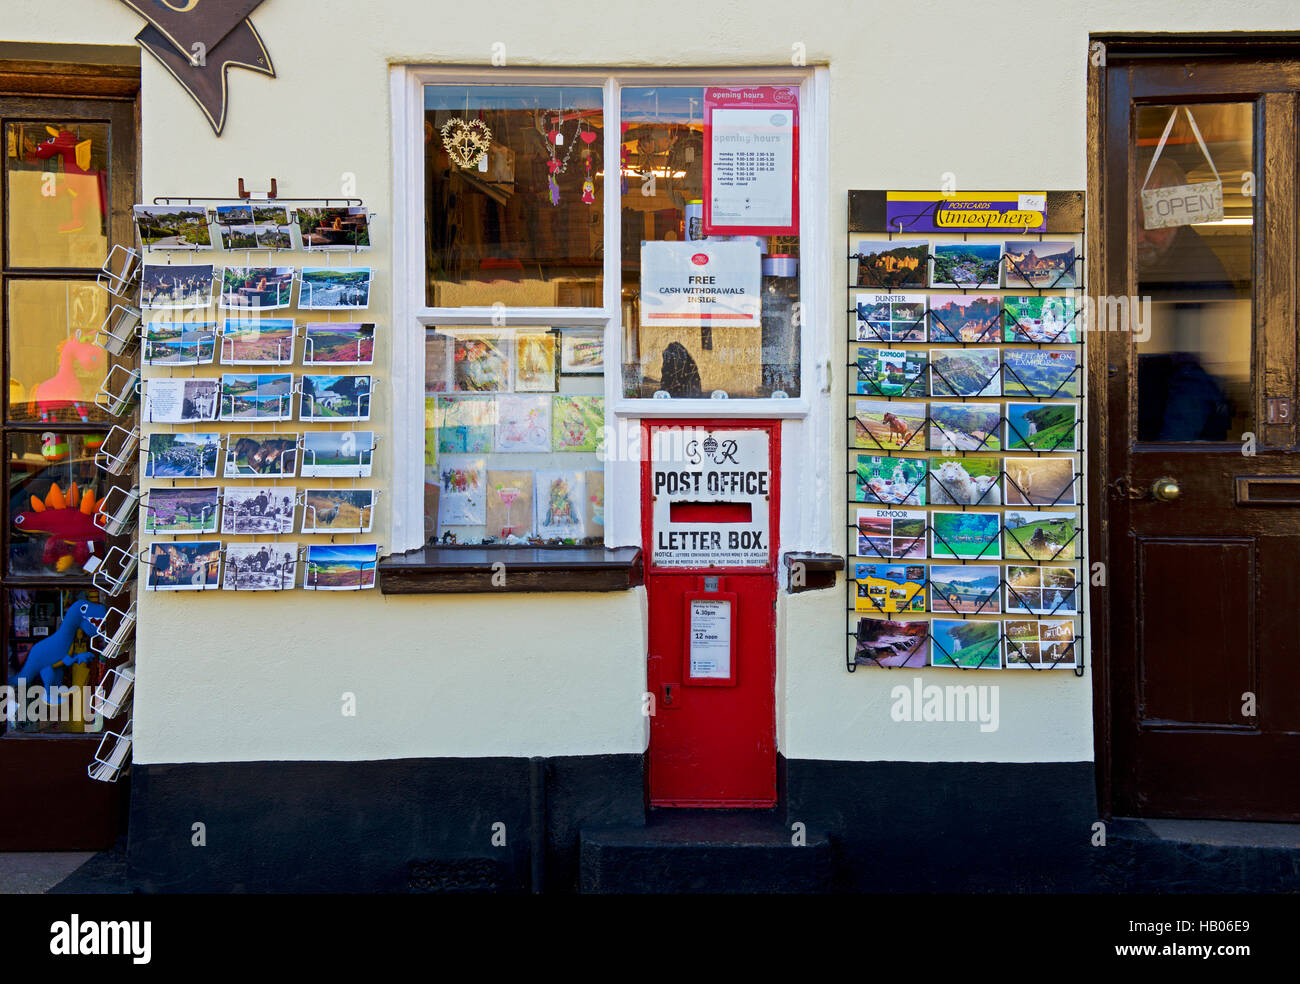 Postcards displayed outside the post office in the village of Dunster, Somerset, England UK Stock Photo